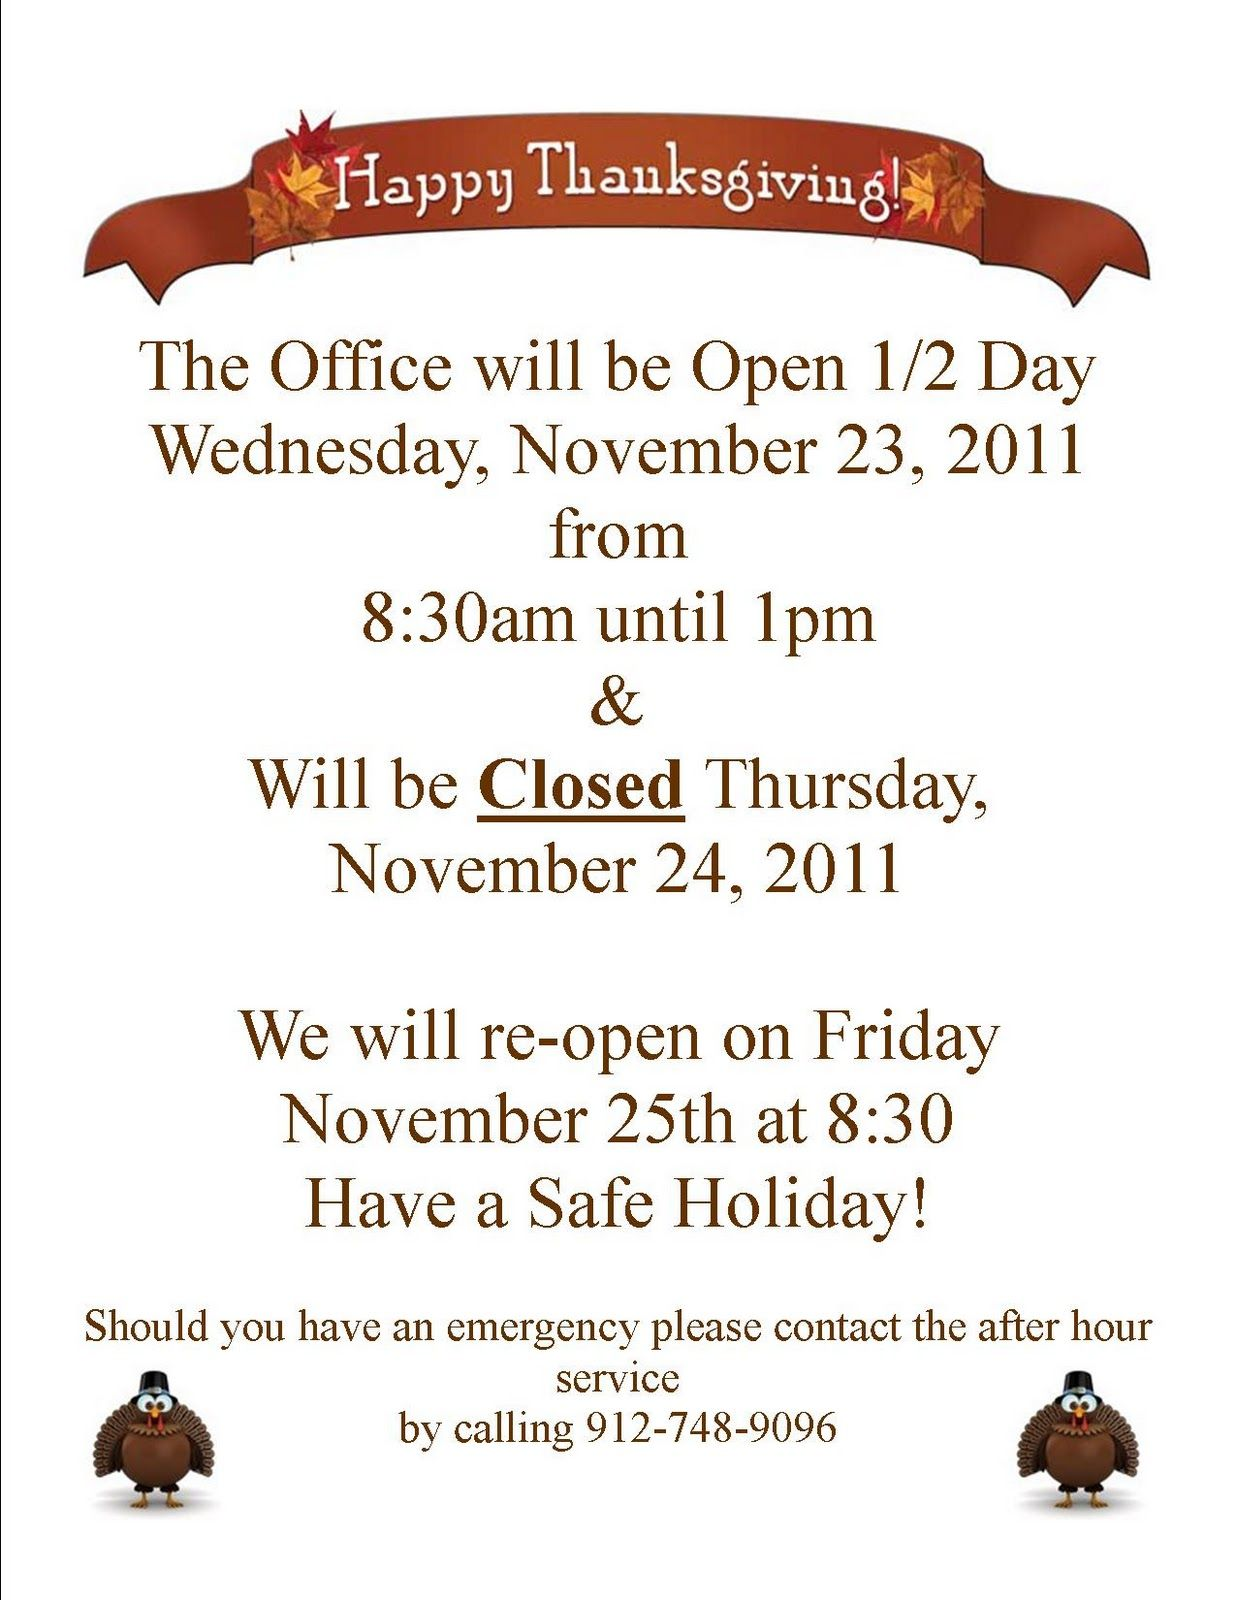 Free Templates For Business Closing For The Holiday Google Search Business Hours Sign Closed For Holidays Holiday Messages Closed for the holidays sign